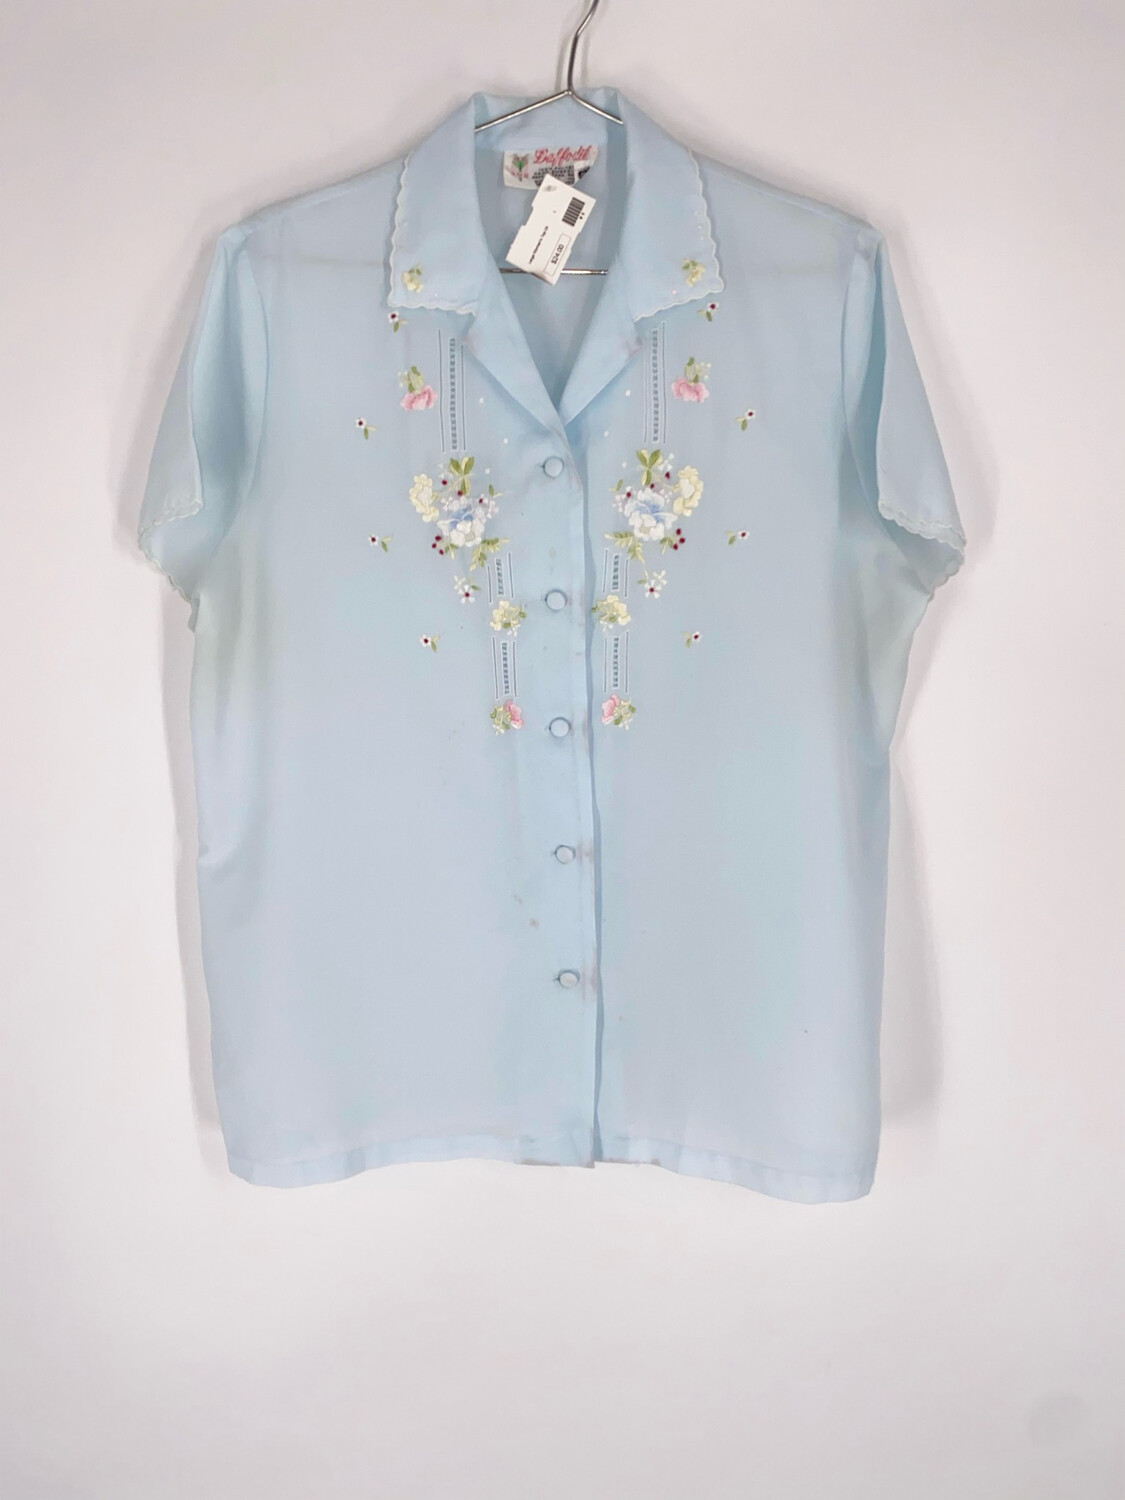 Daffodil Blue Floral Embroidered Blouse Size XL